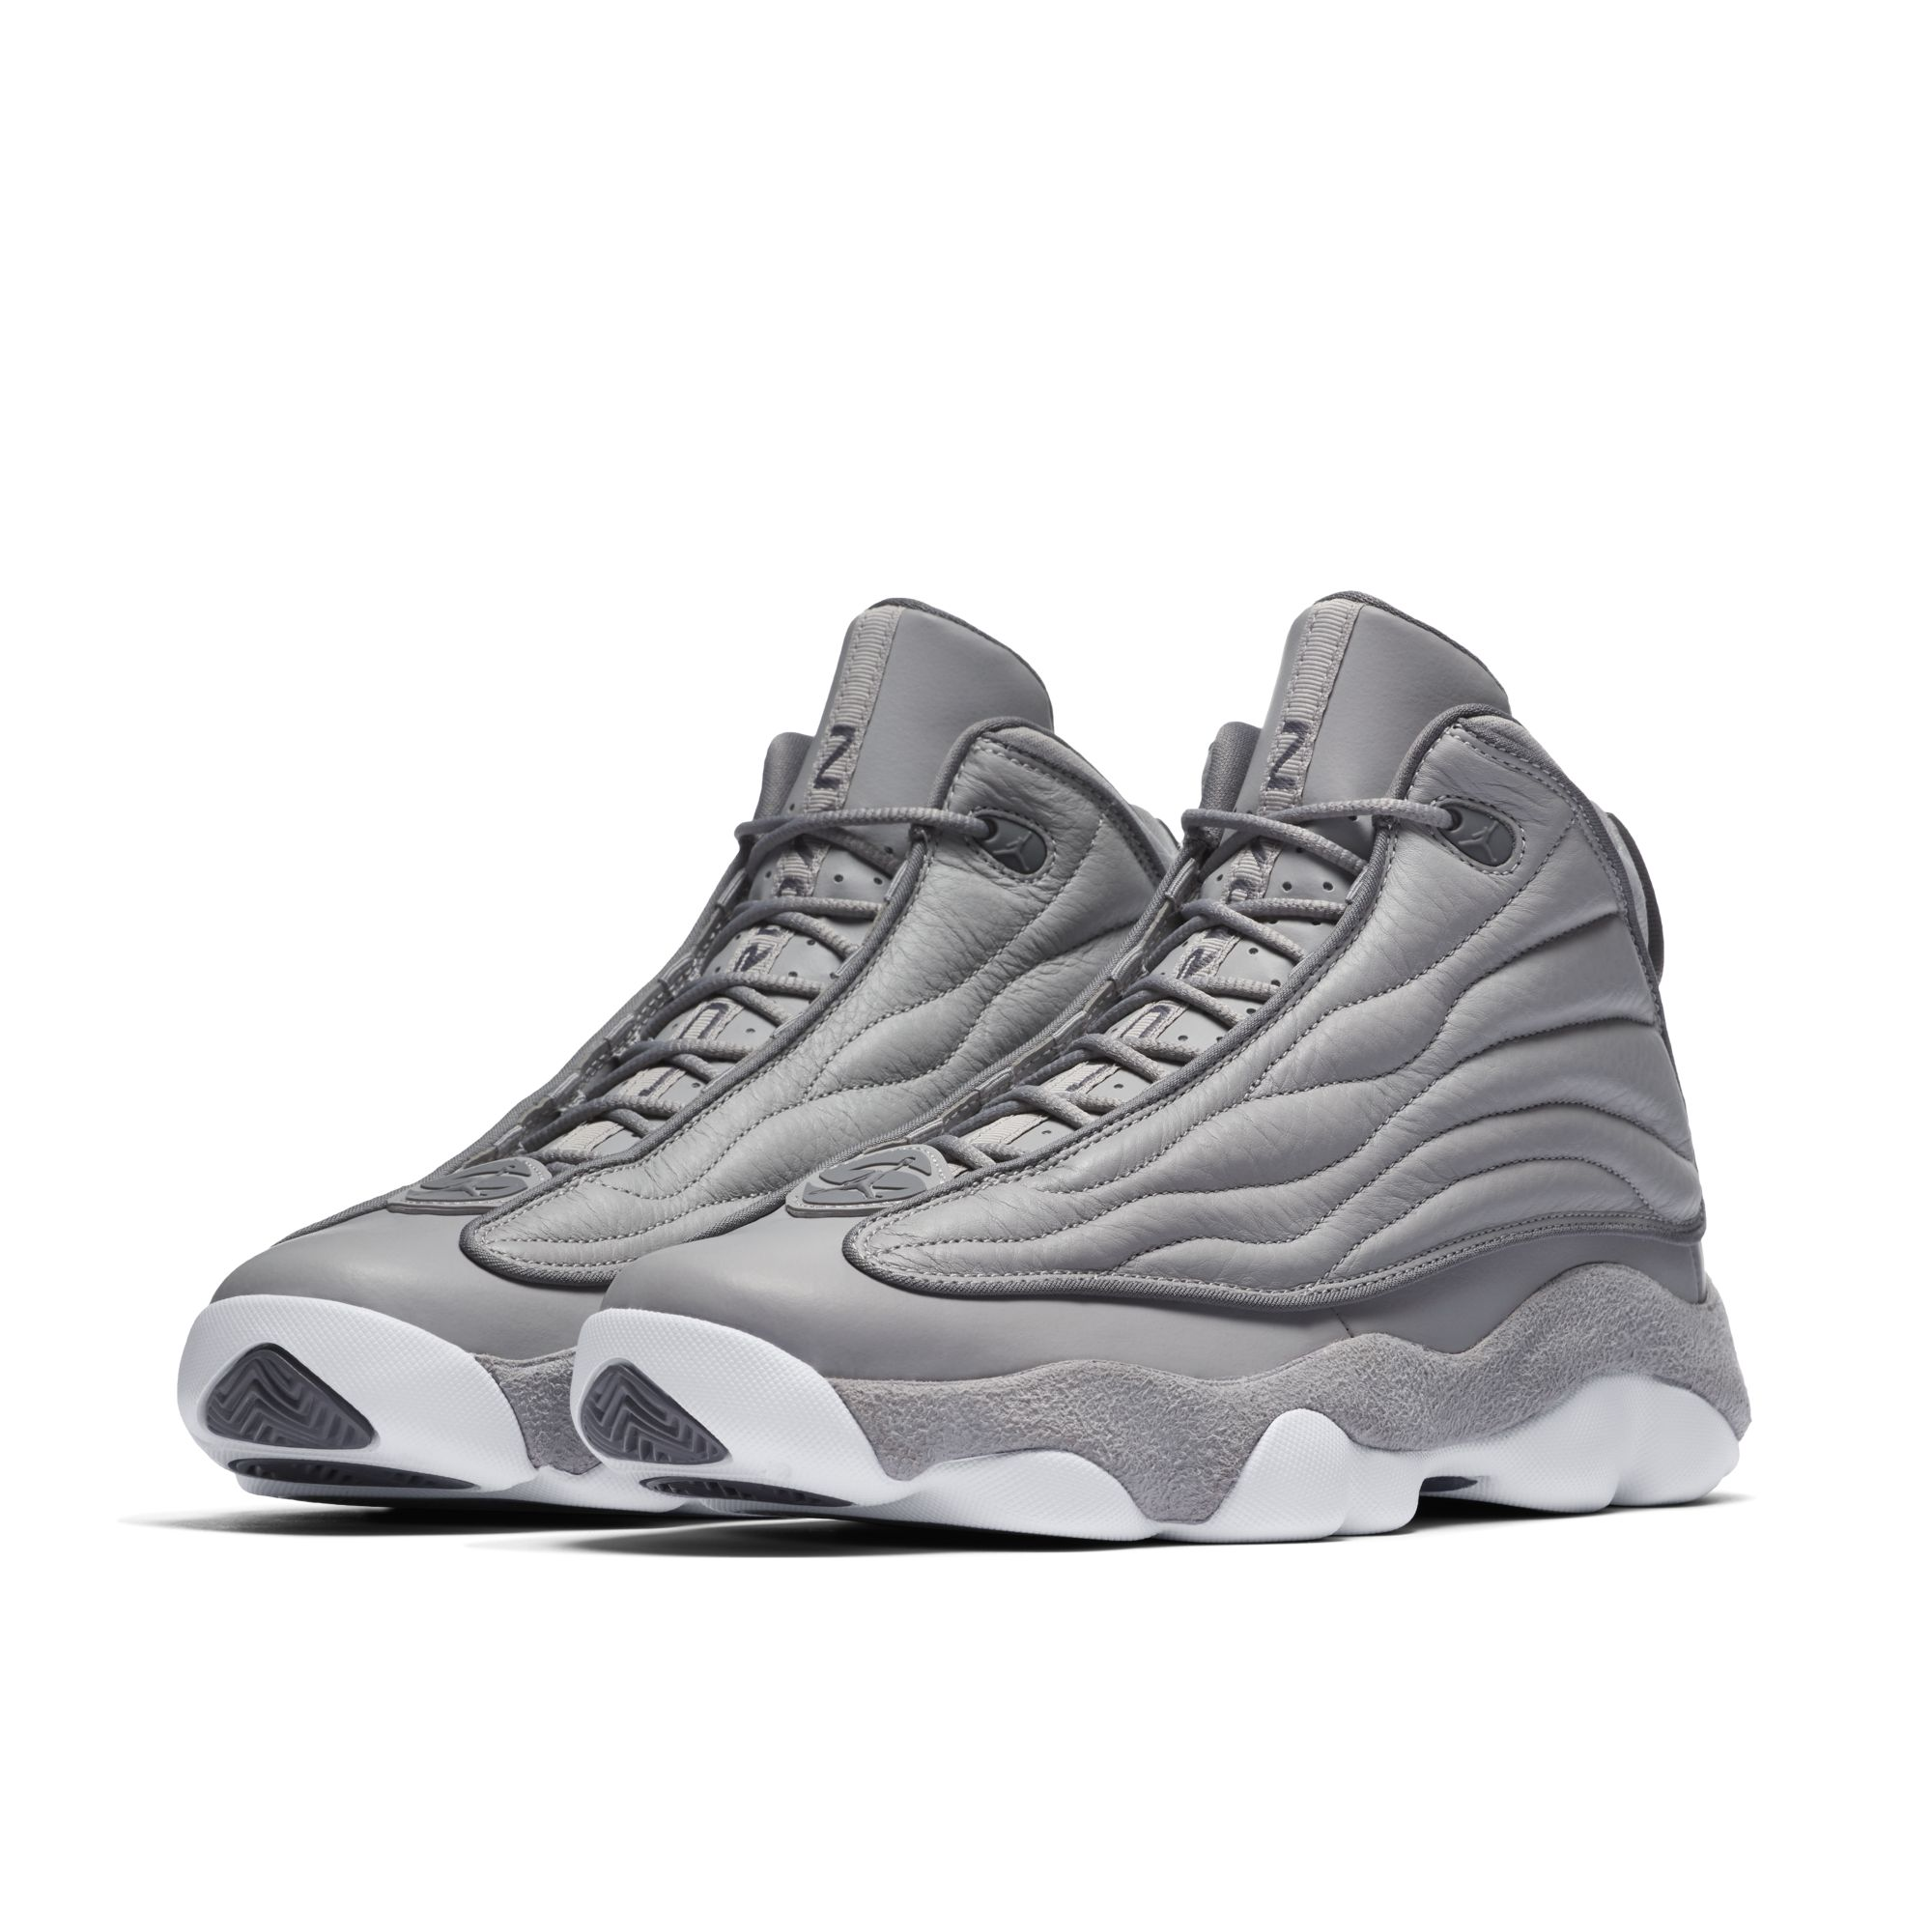 3e289ca0855 jordan jumpman pro strong grey - WearTesters